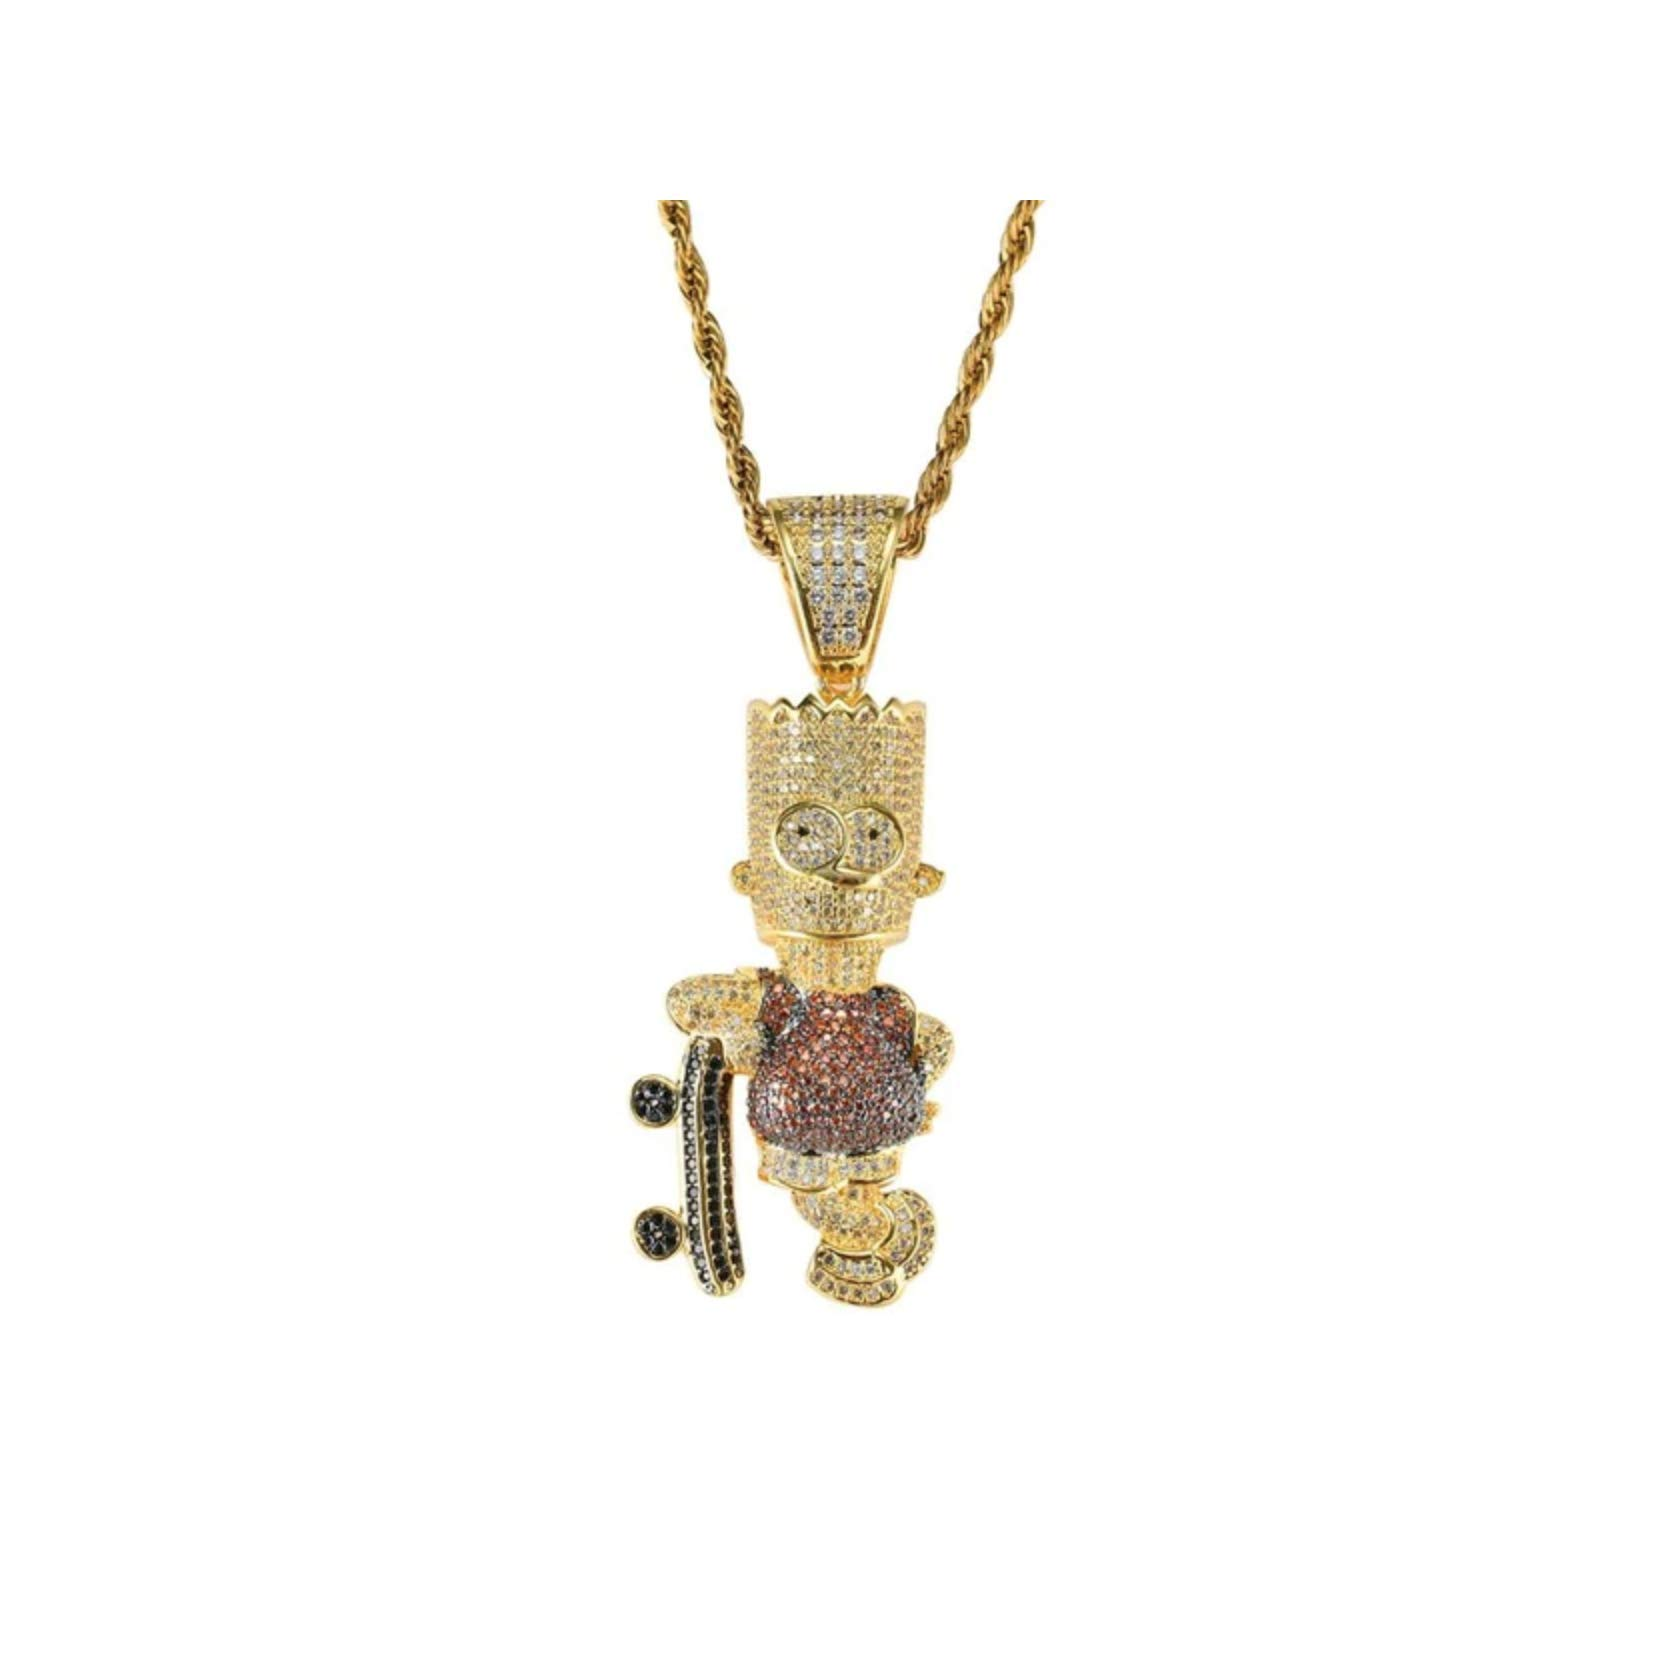 ICE BOX Bart Simpson Cubic Zirconium Diamond Gold Head Bart Simpson Skateboard Chain